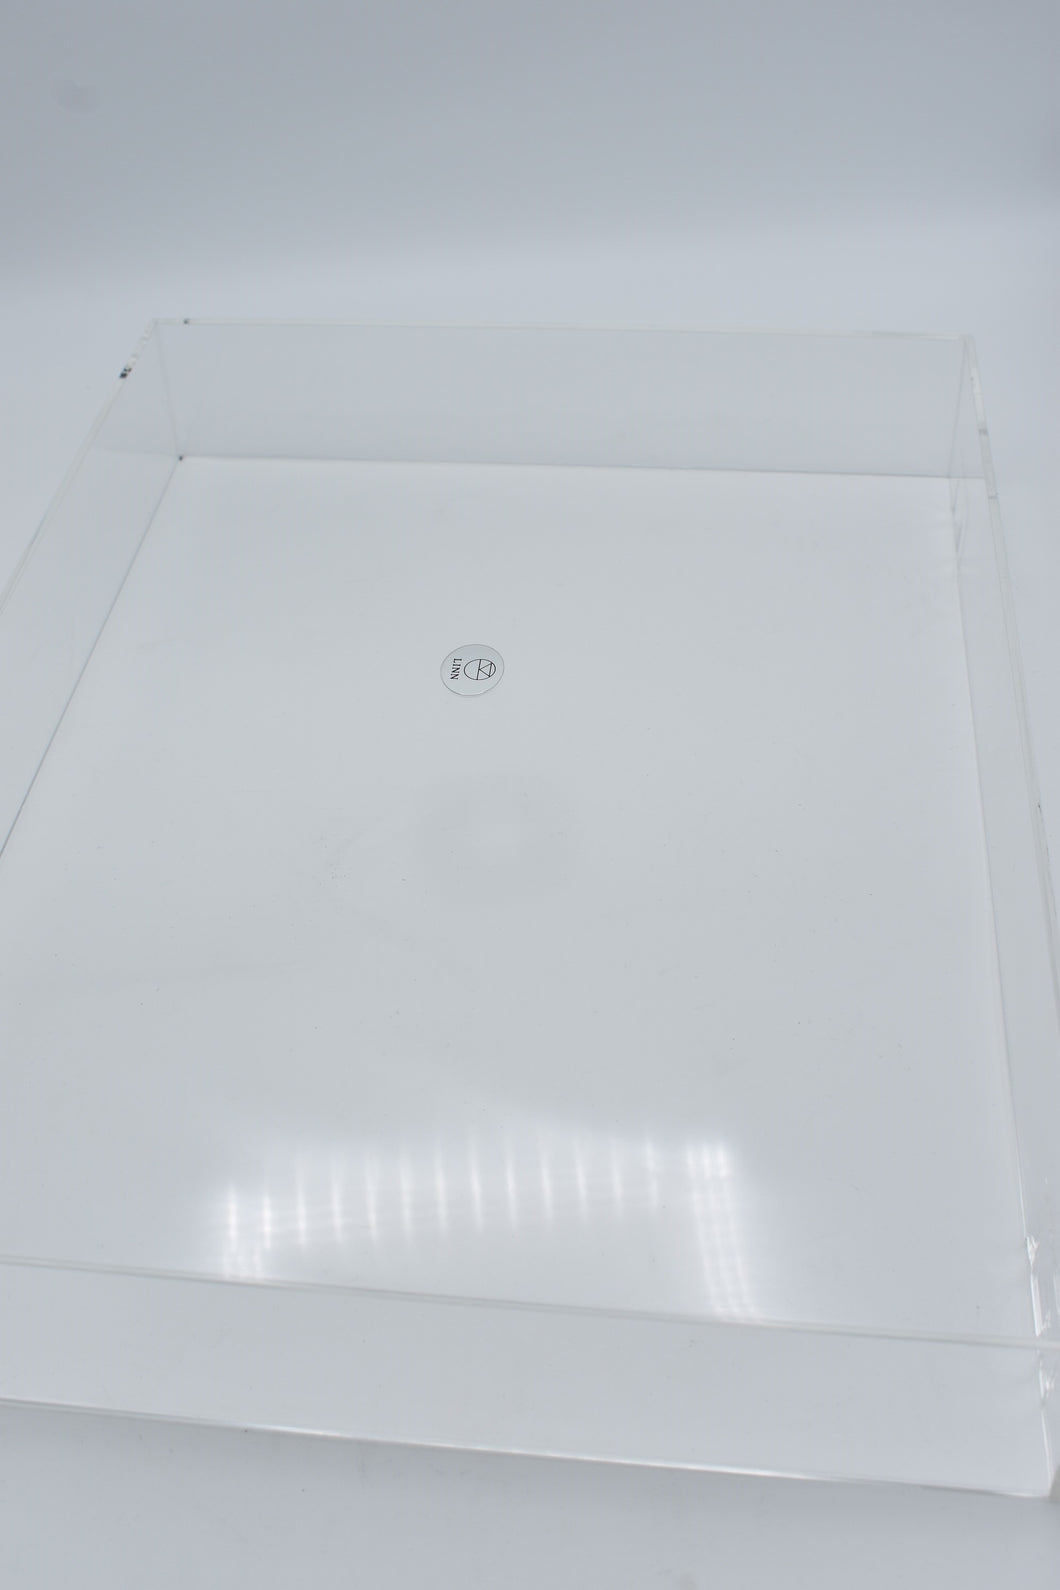 Linn LP12 Clear Lid (2019) (Preowned, Ref 001562)